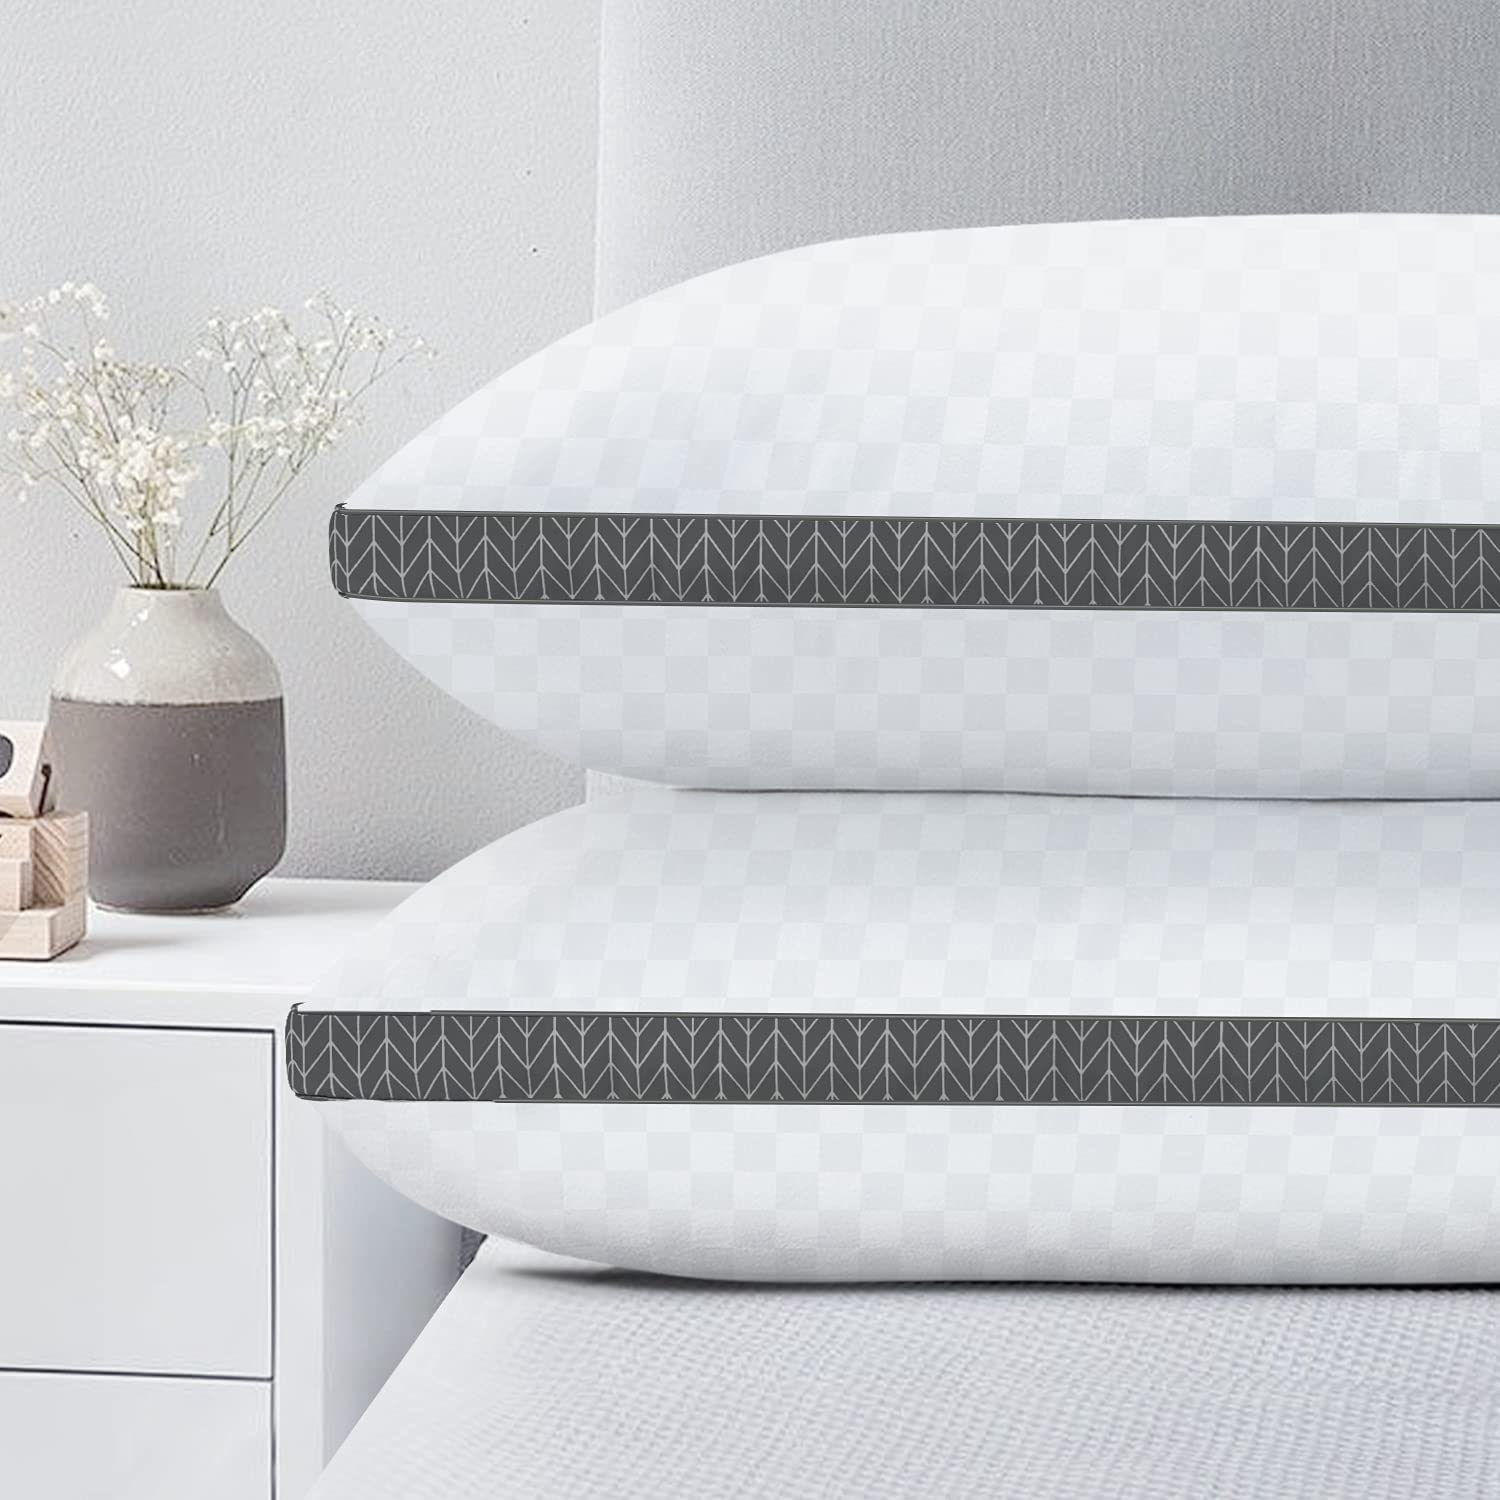 BedStory Pillows for Sleeping Max 64% OFF Queen Size Soft 1 year warranty Bed 2 Ultra Pack